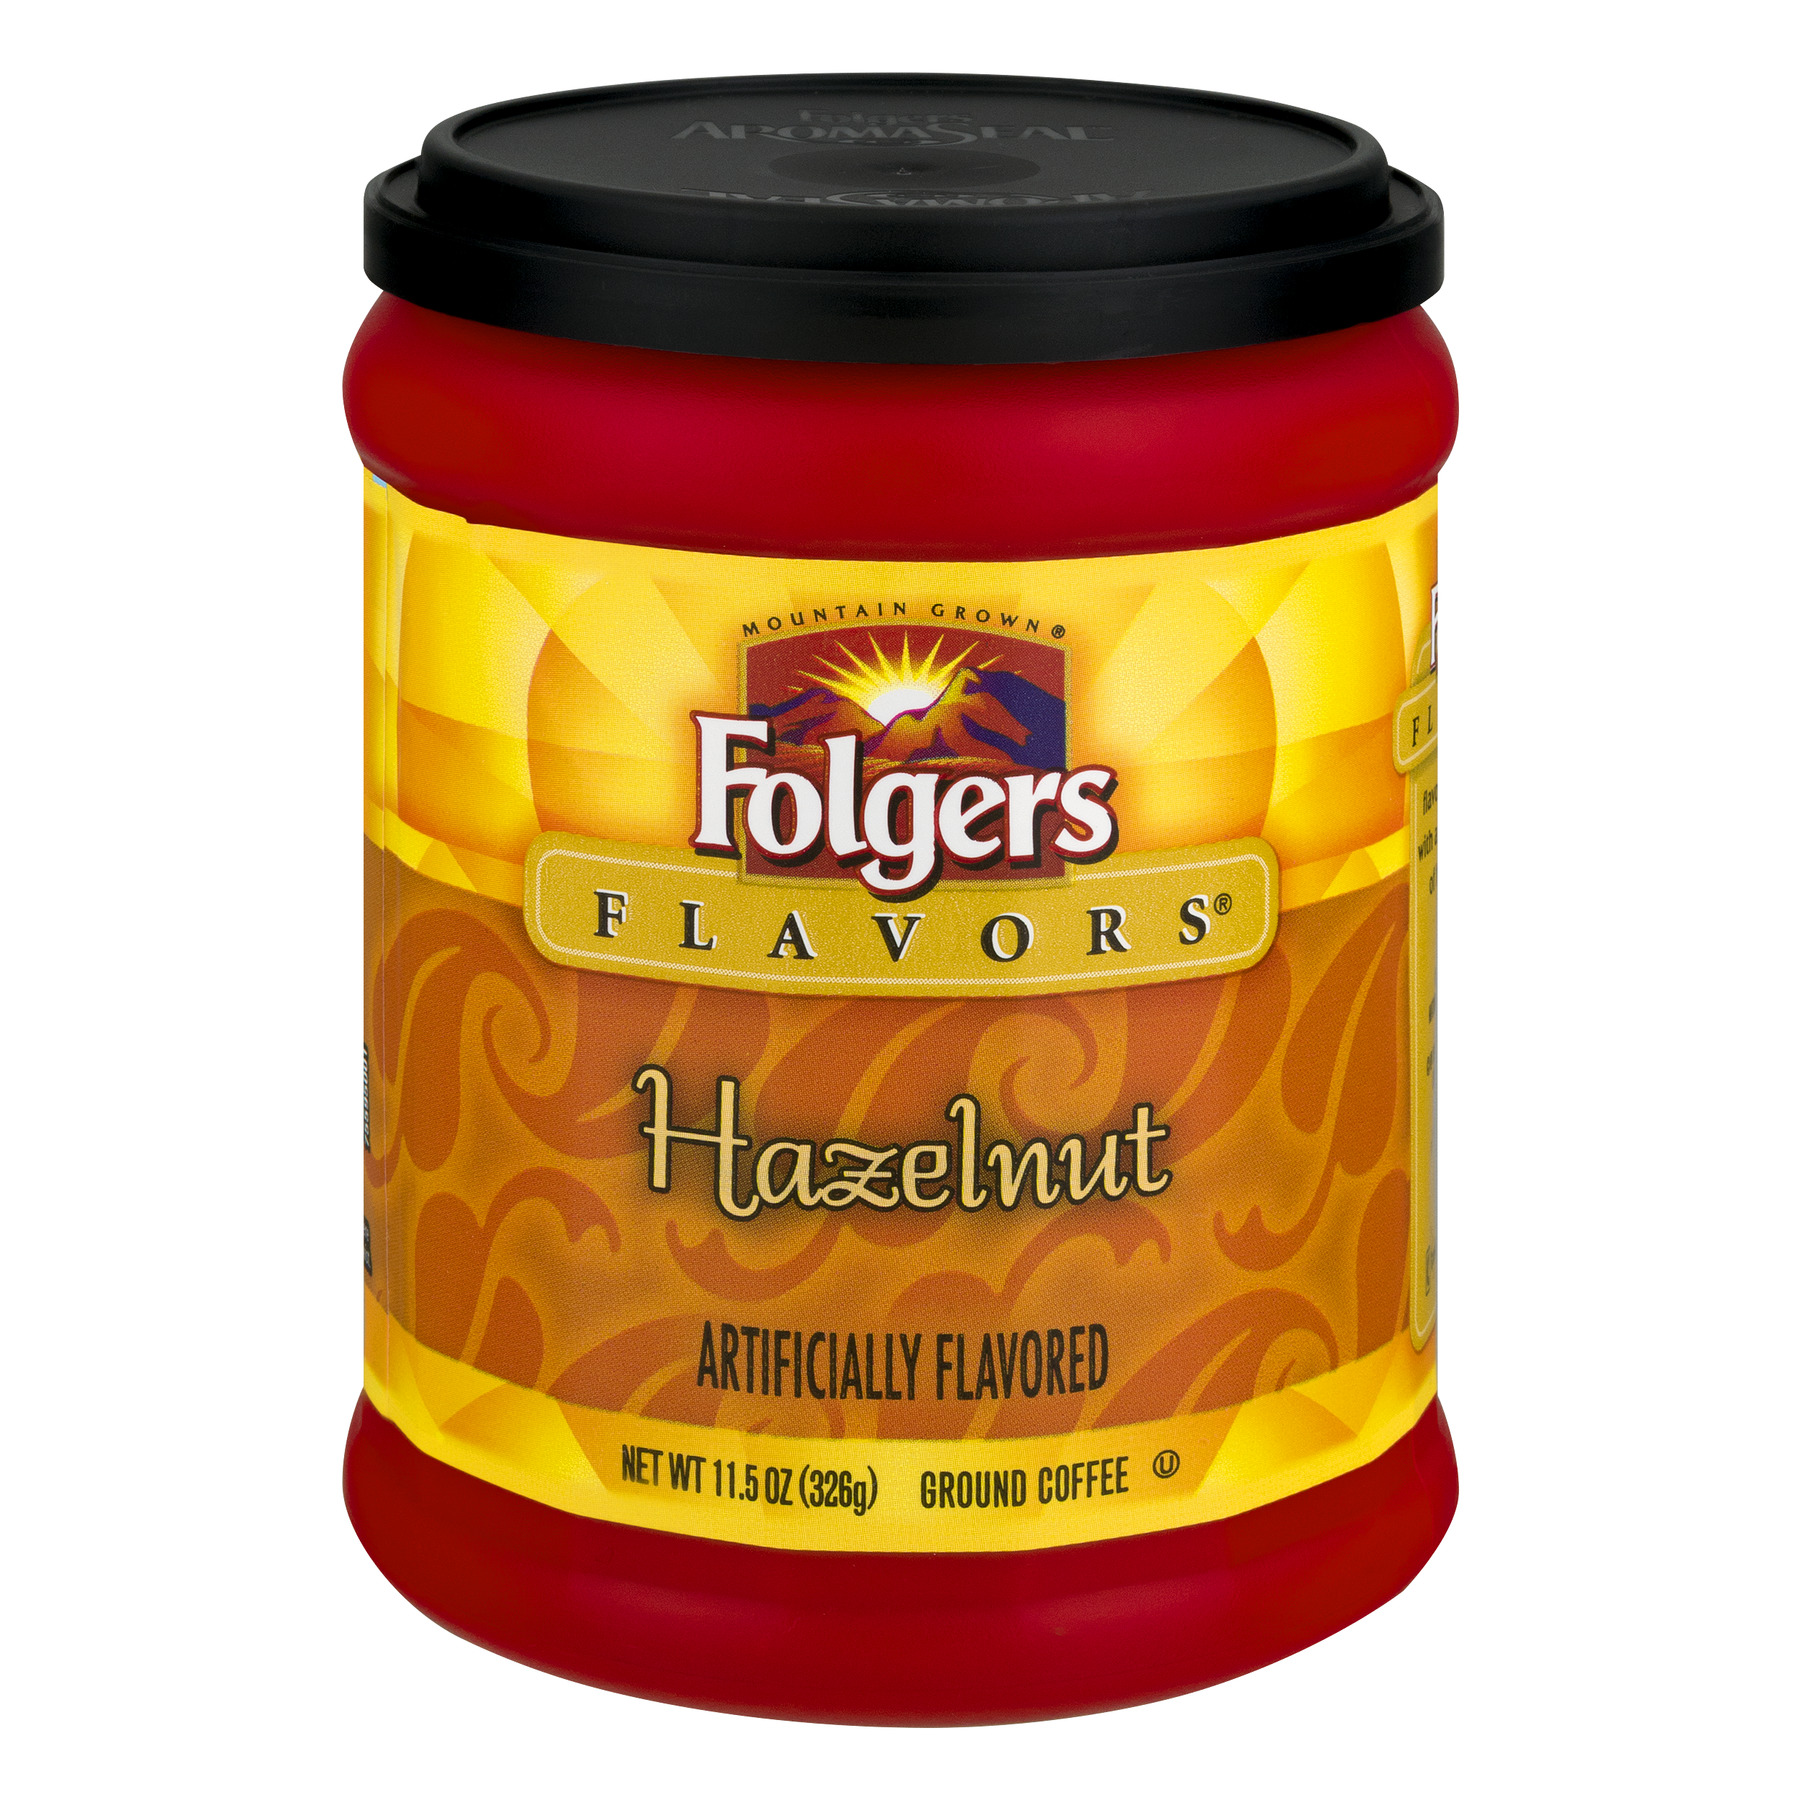 Folgers Flavors Hazelnut Ground Coffee, 11.5 oz